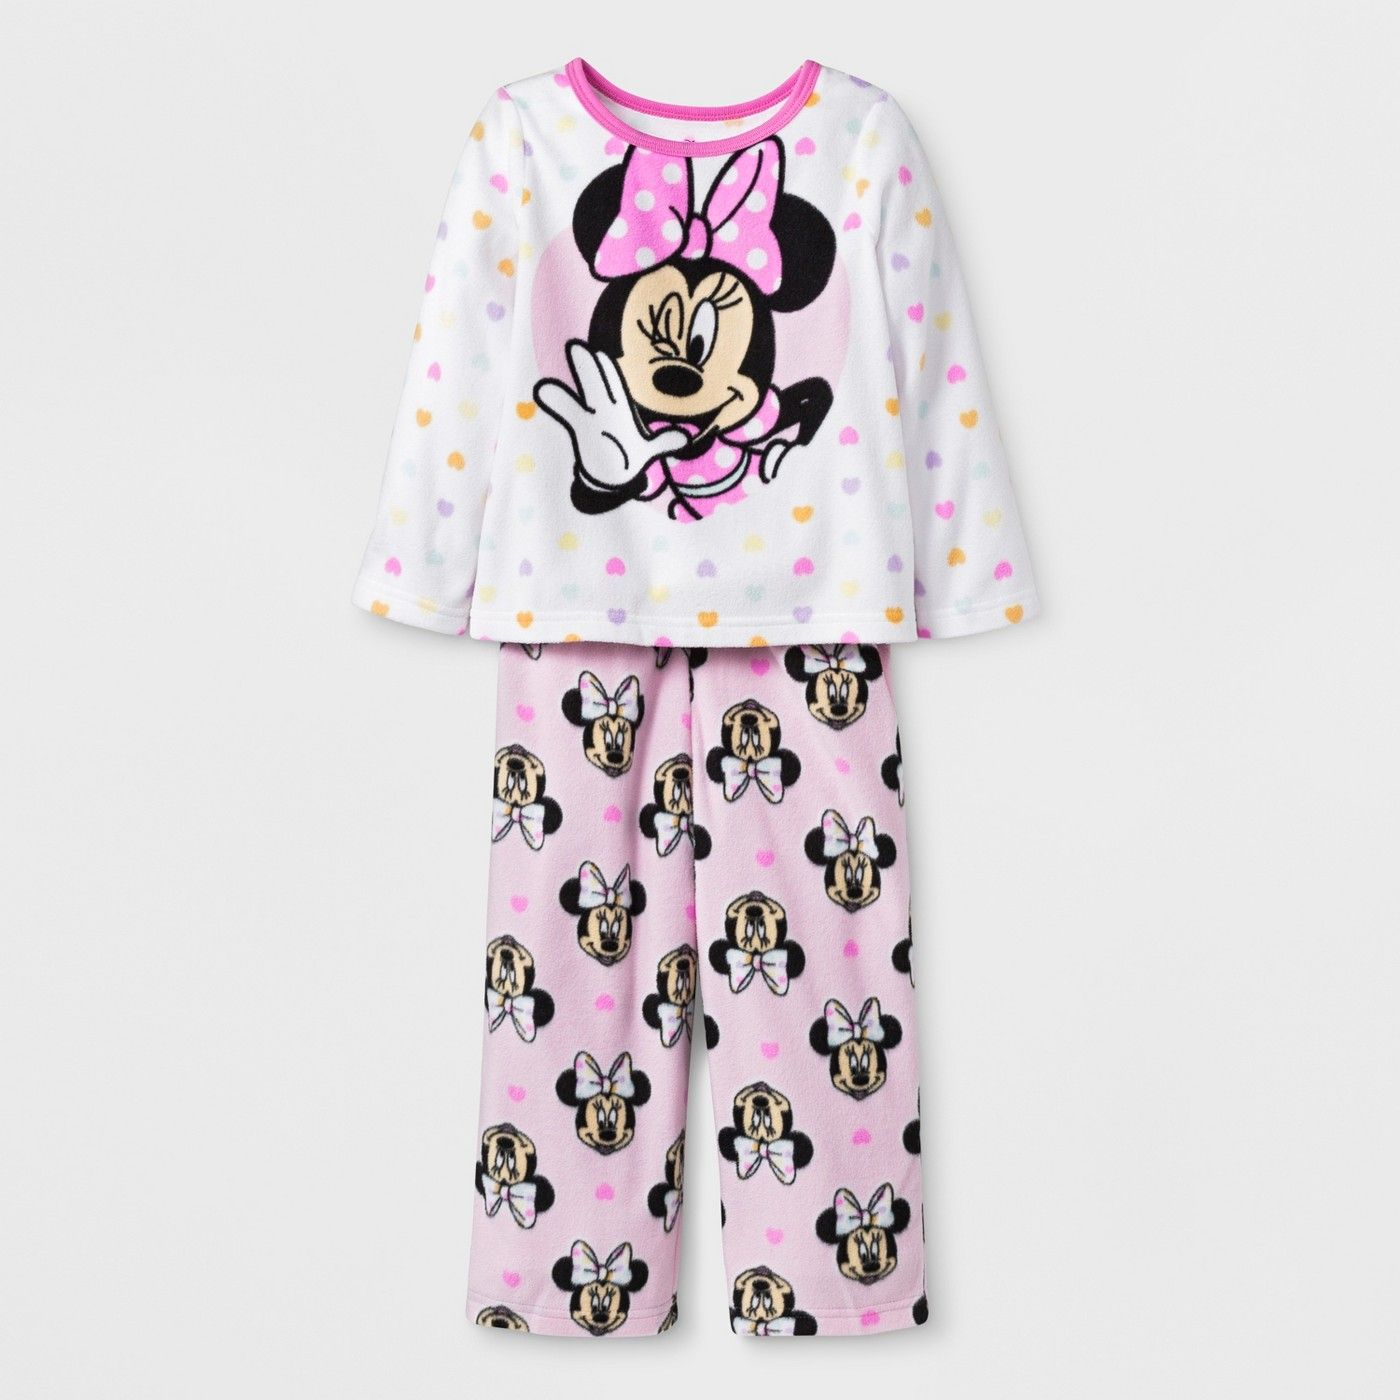 Toddler Girls  Minnie Mouse 2pc Fleece Pajama Set - White 2T  Minnie ... d3800cdf4